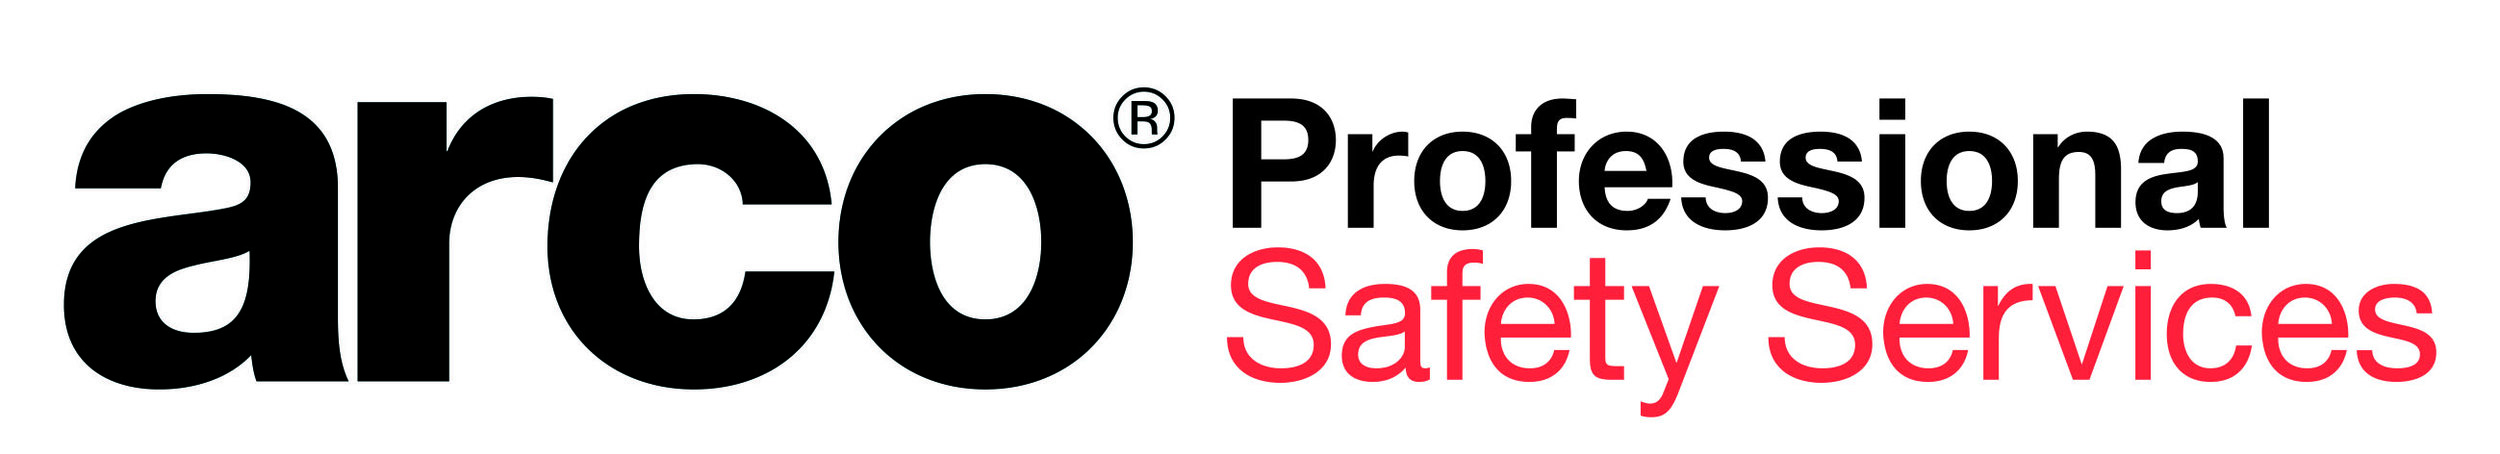 ARCO Professional Safety Services_Master Logo LARGE.jpg